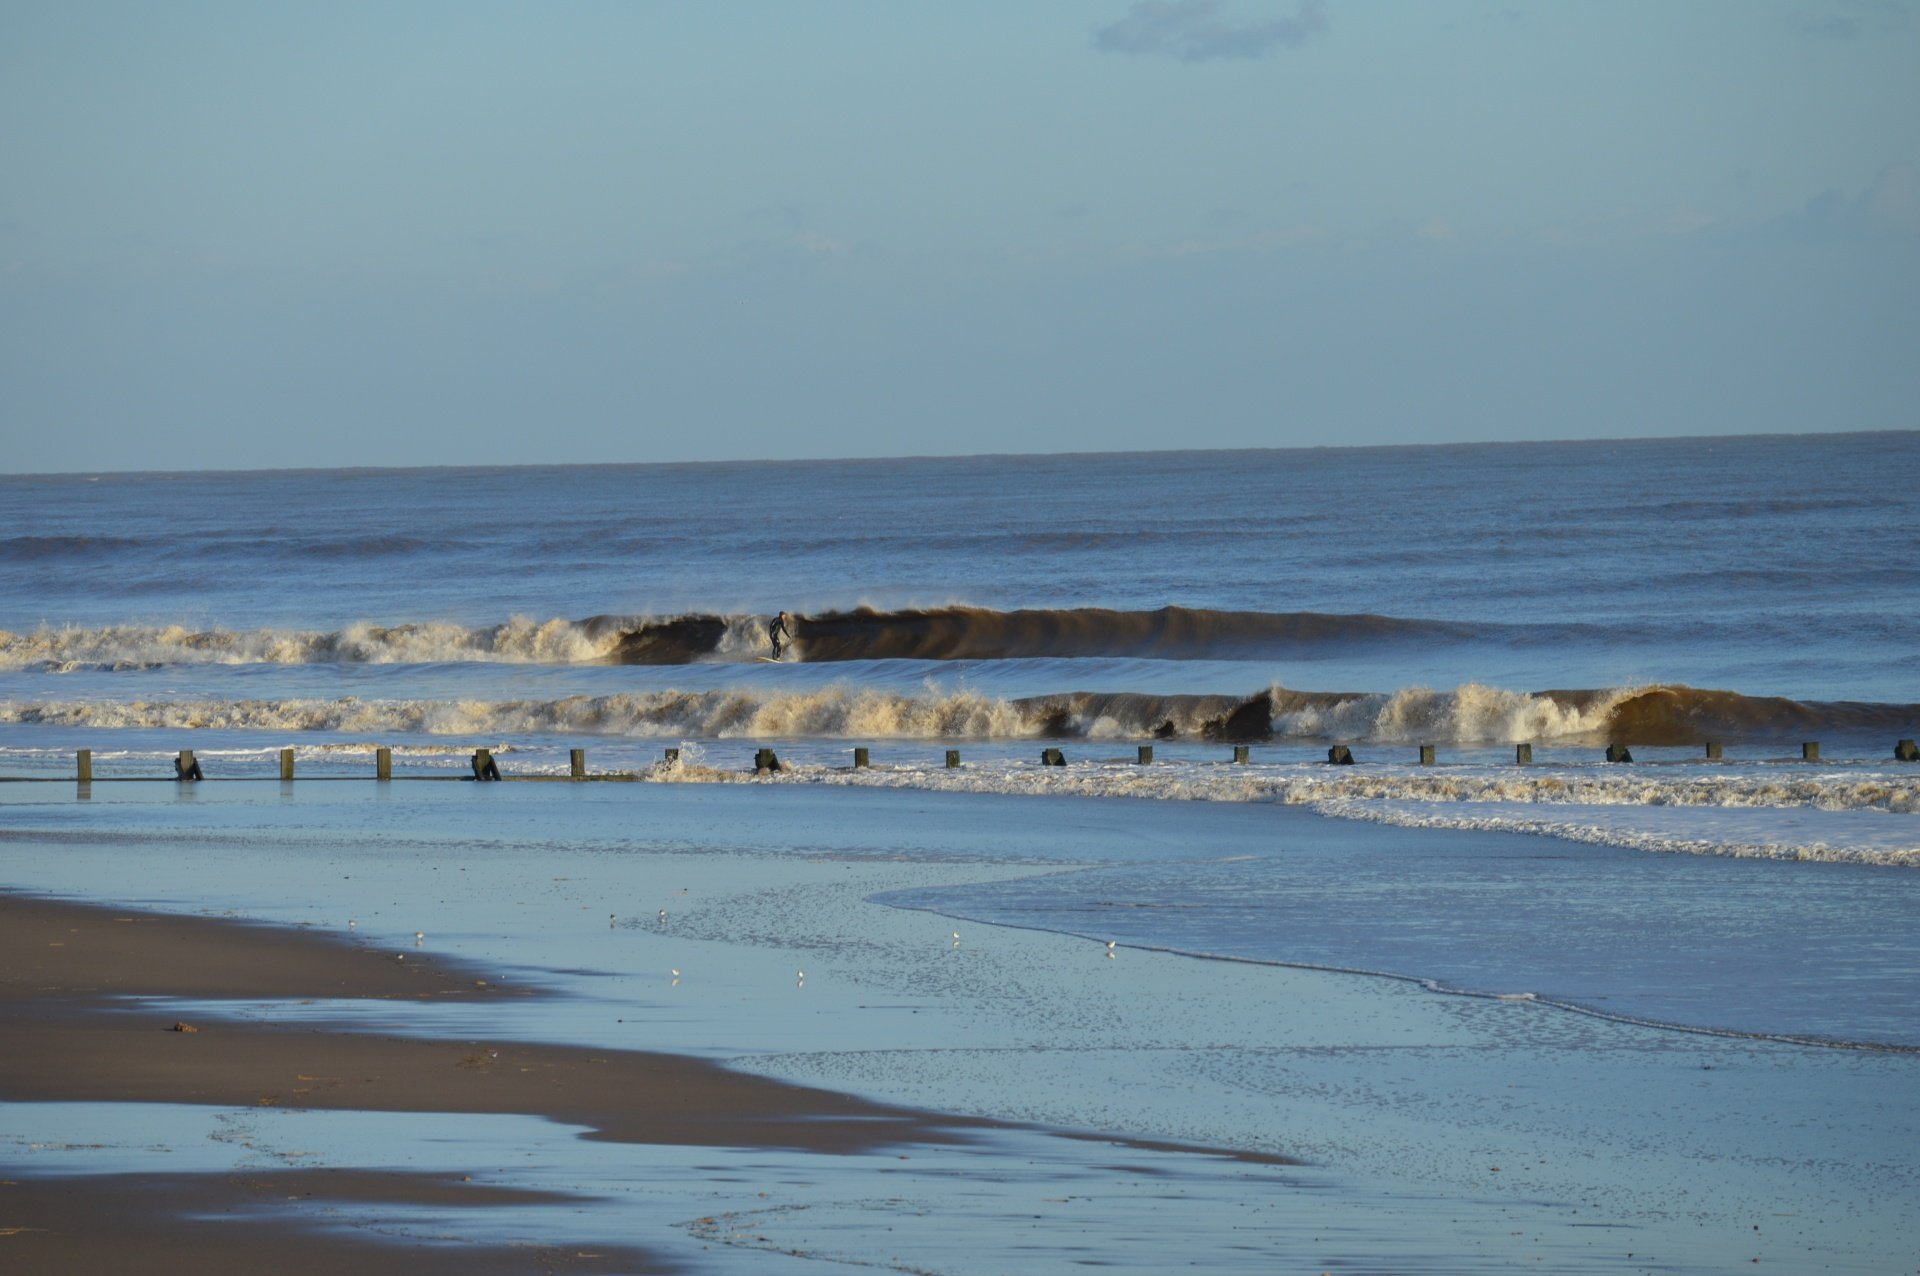 napalm's photo of Skegness